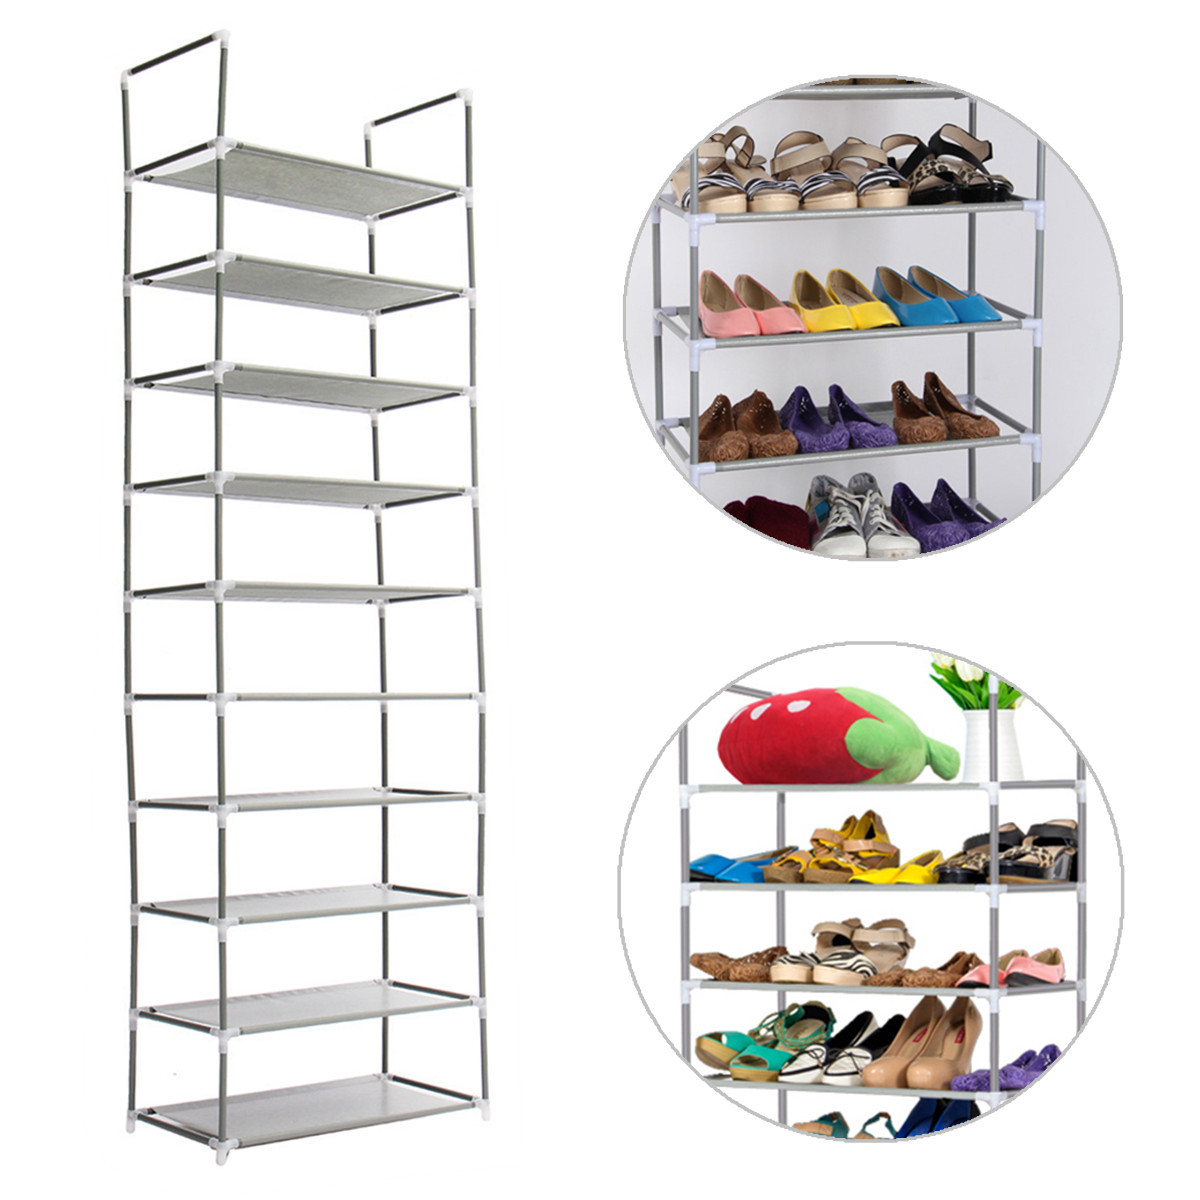 10 Layer Tier Modern Shoes Racks DIY Home Shoe Rack Shoe Cabinet Shelf Multi Tiers Shoes Storage Organizer Stand Holder